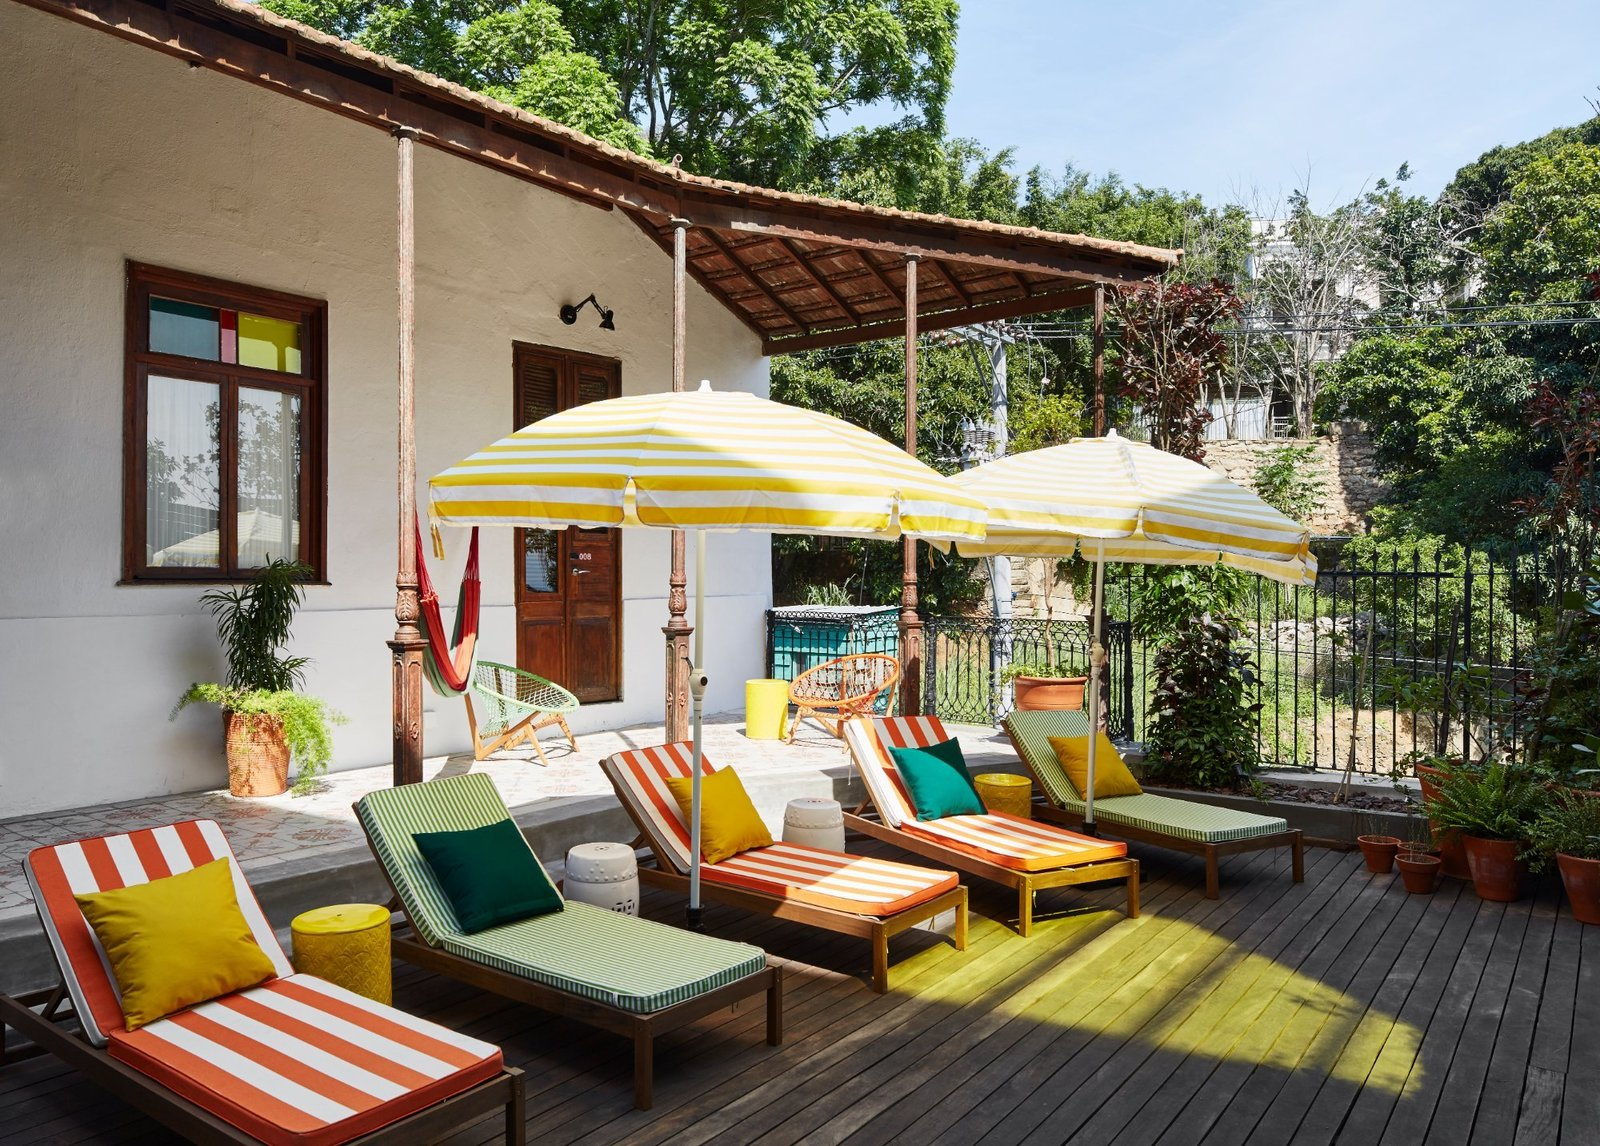 Outdoor, Metal Fences, Wall, Back Yard, Trees, Tile Patio, Porch, Deck, Decking Patio, Porch, Deck, Hanging Lighting, Vertical Fences, Wall, and Large Patio, Porch, Deck  Mama Shelter Rio De Janeiro